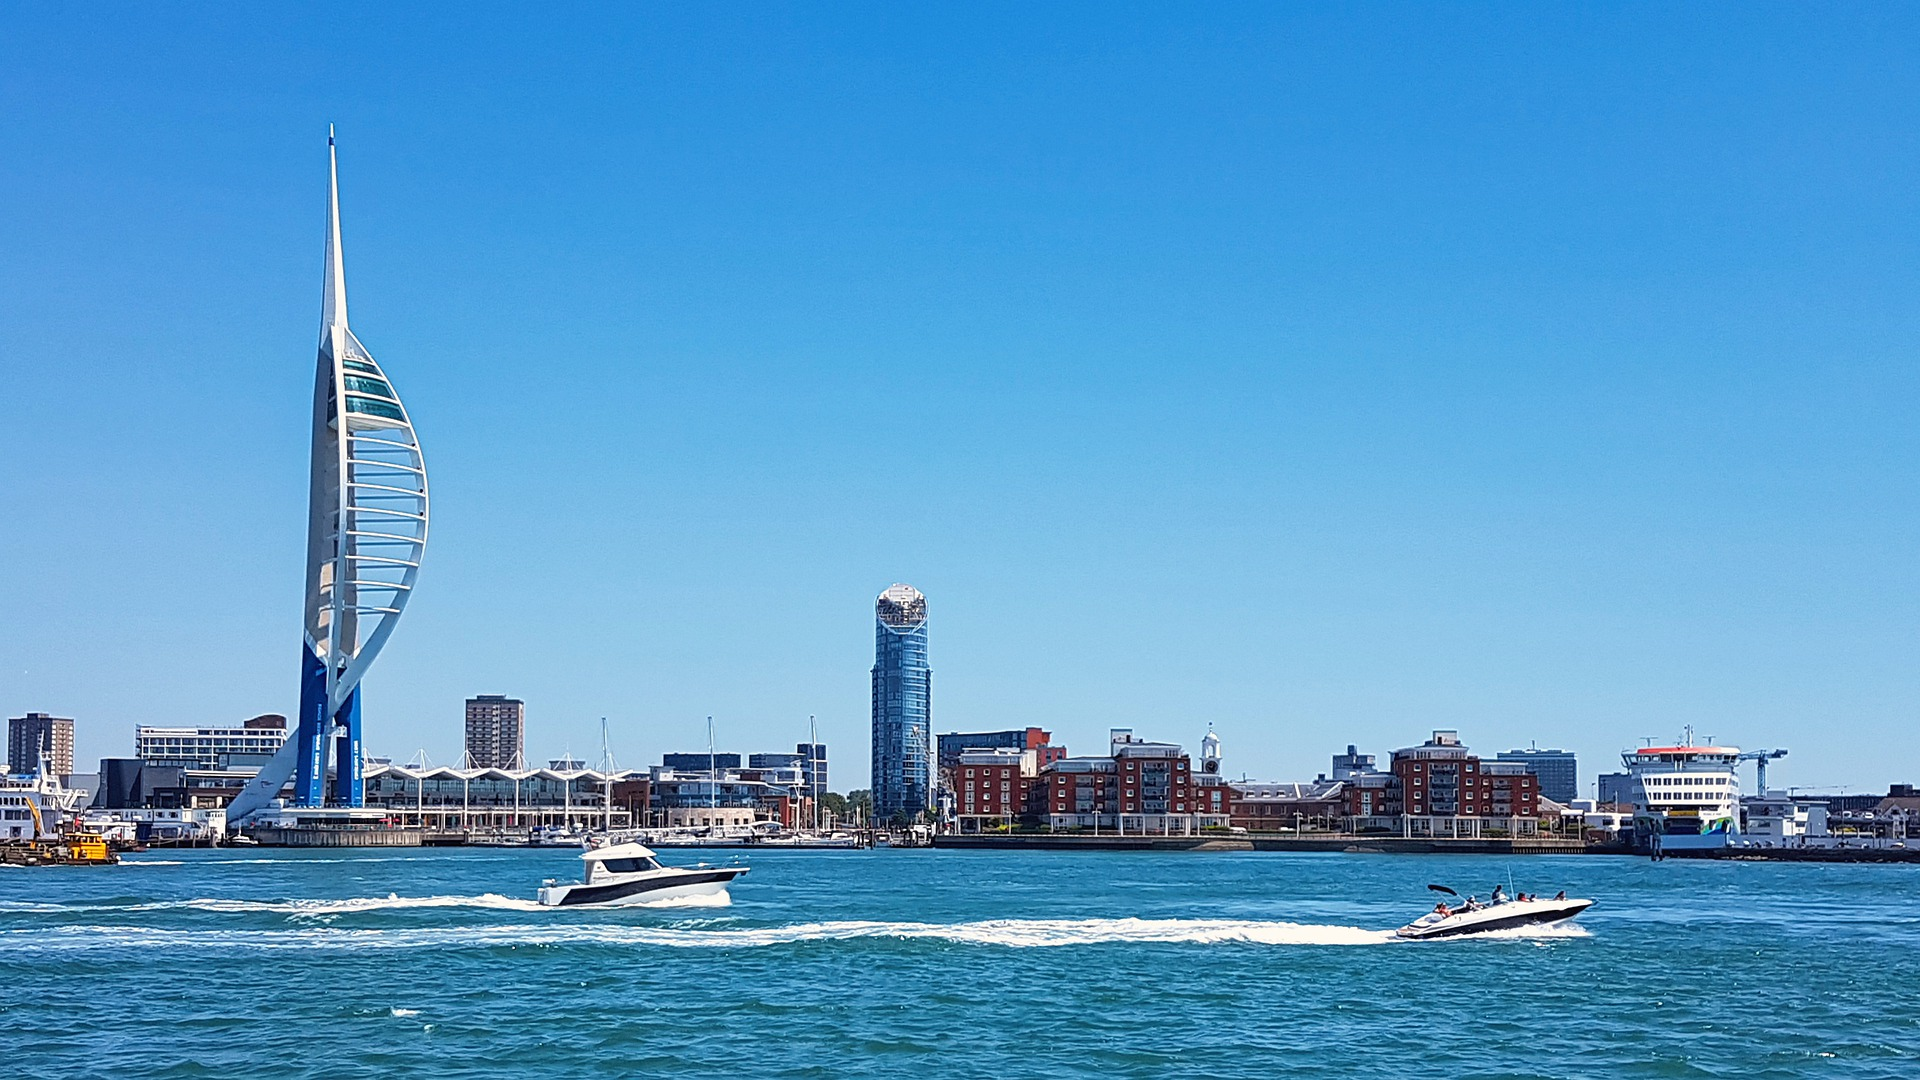 portsmouth-harbour-5337277_1920